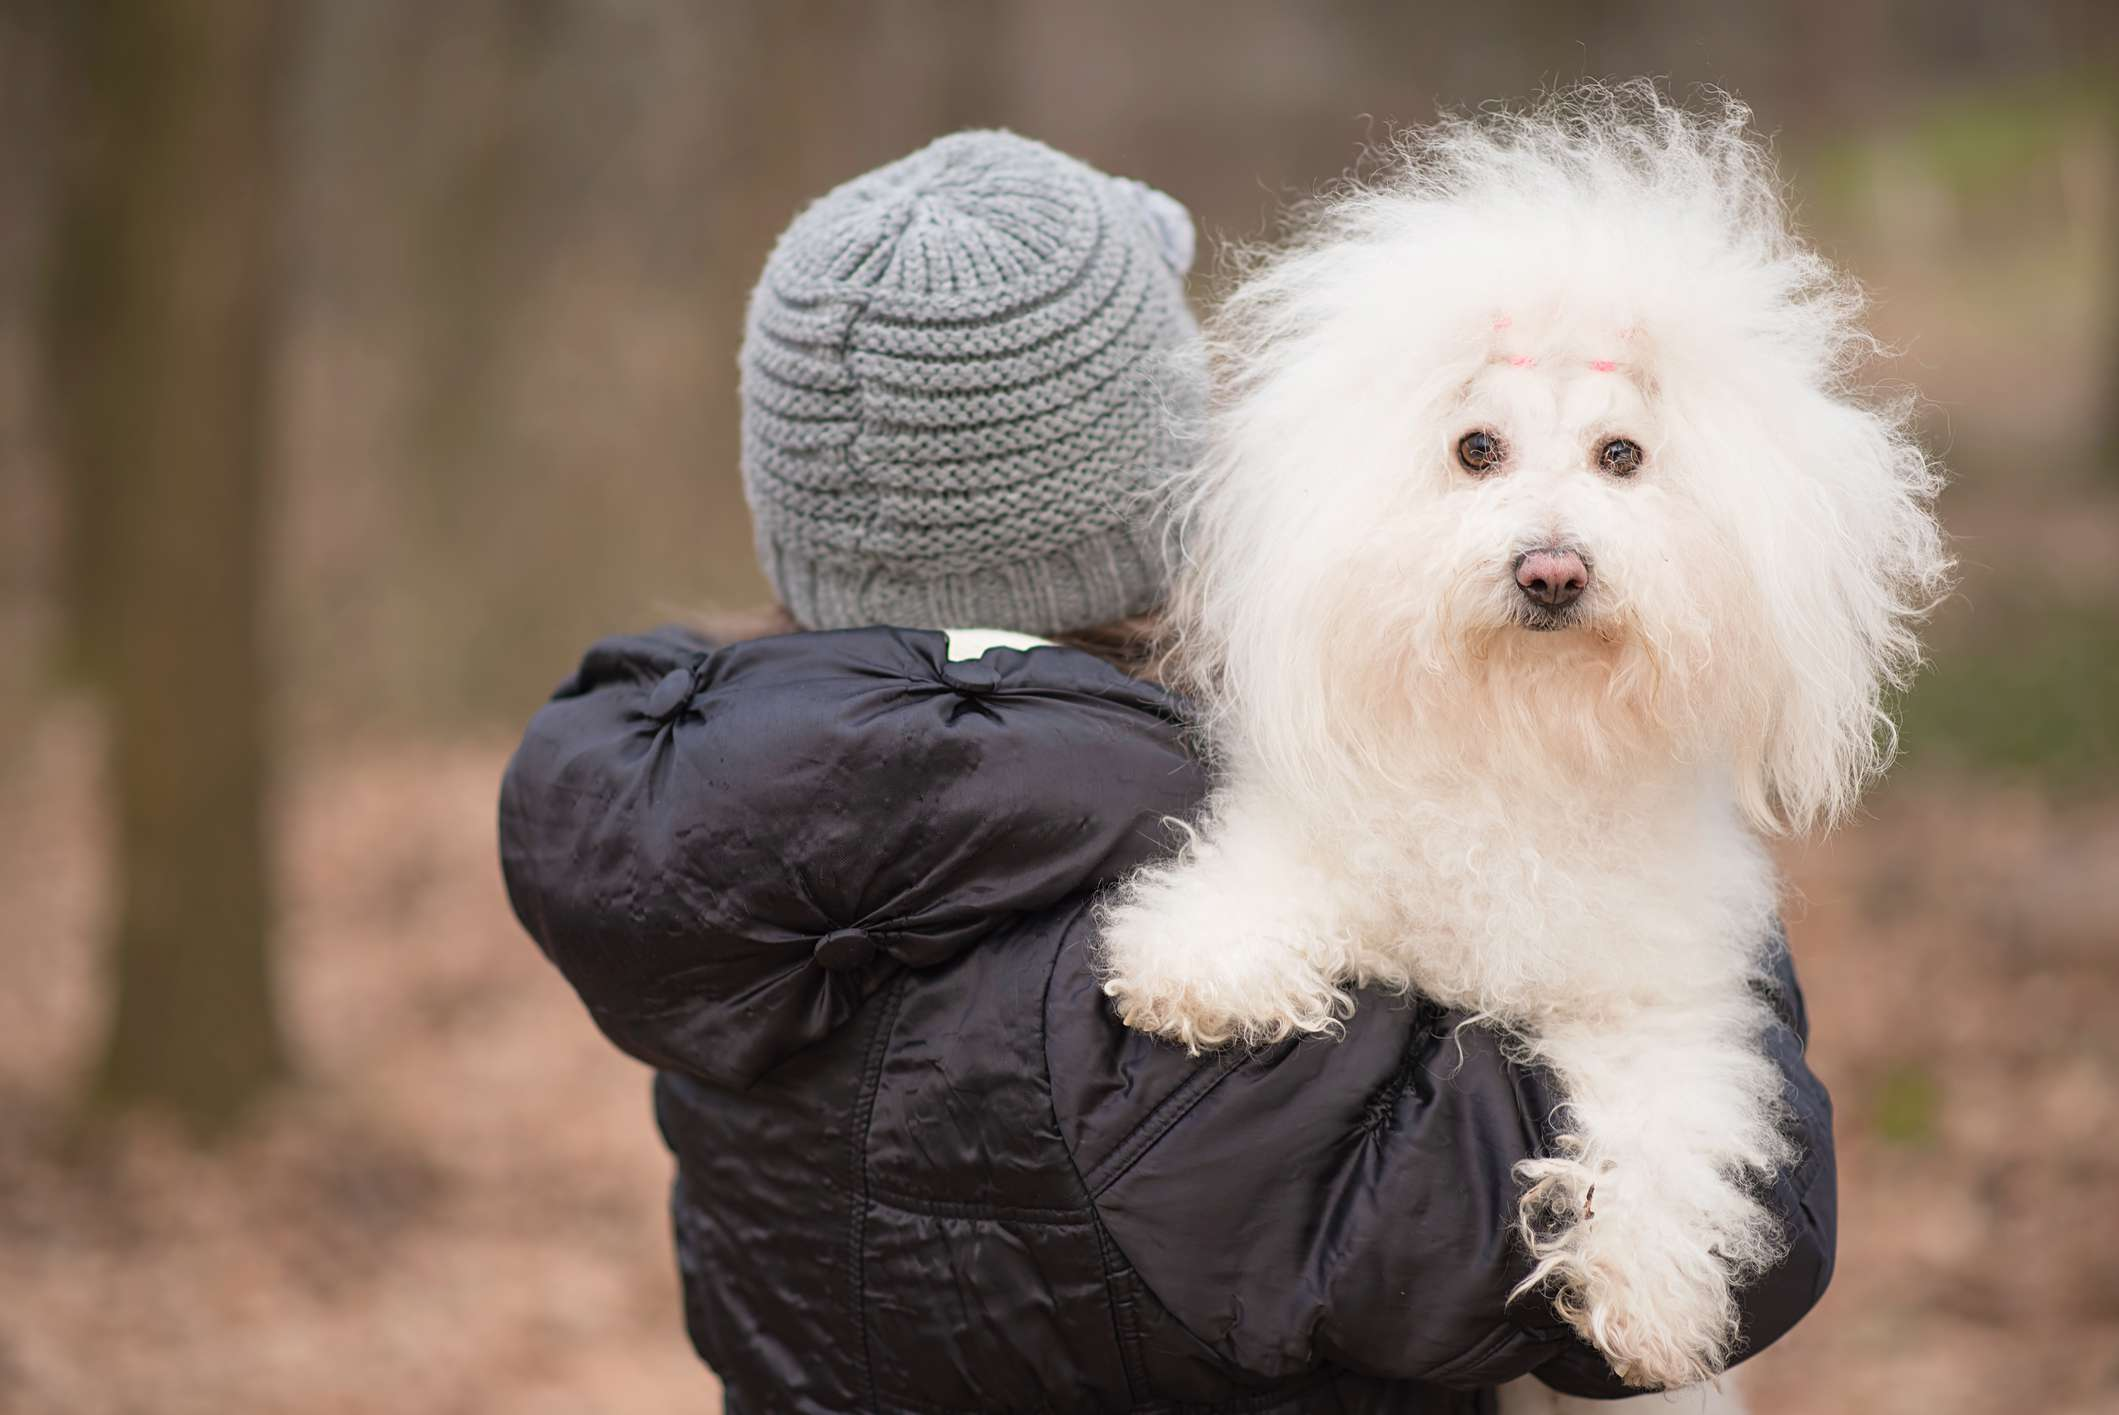 A girl in a beanie and raincoat carrying a fluffy white dog.